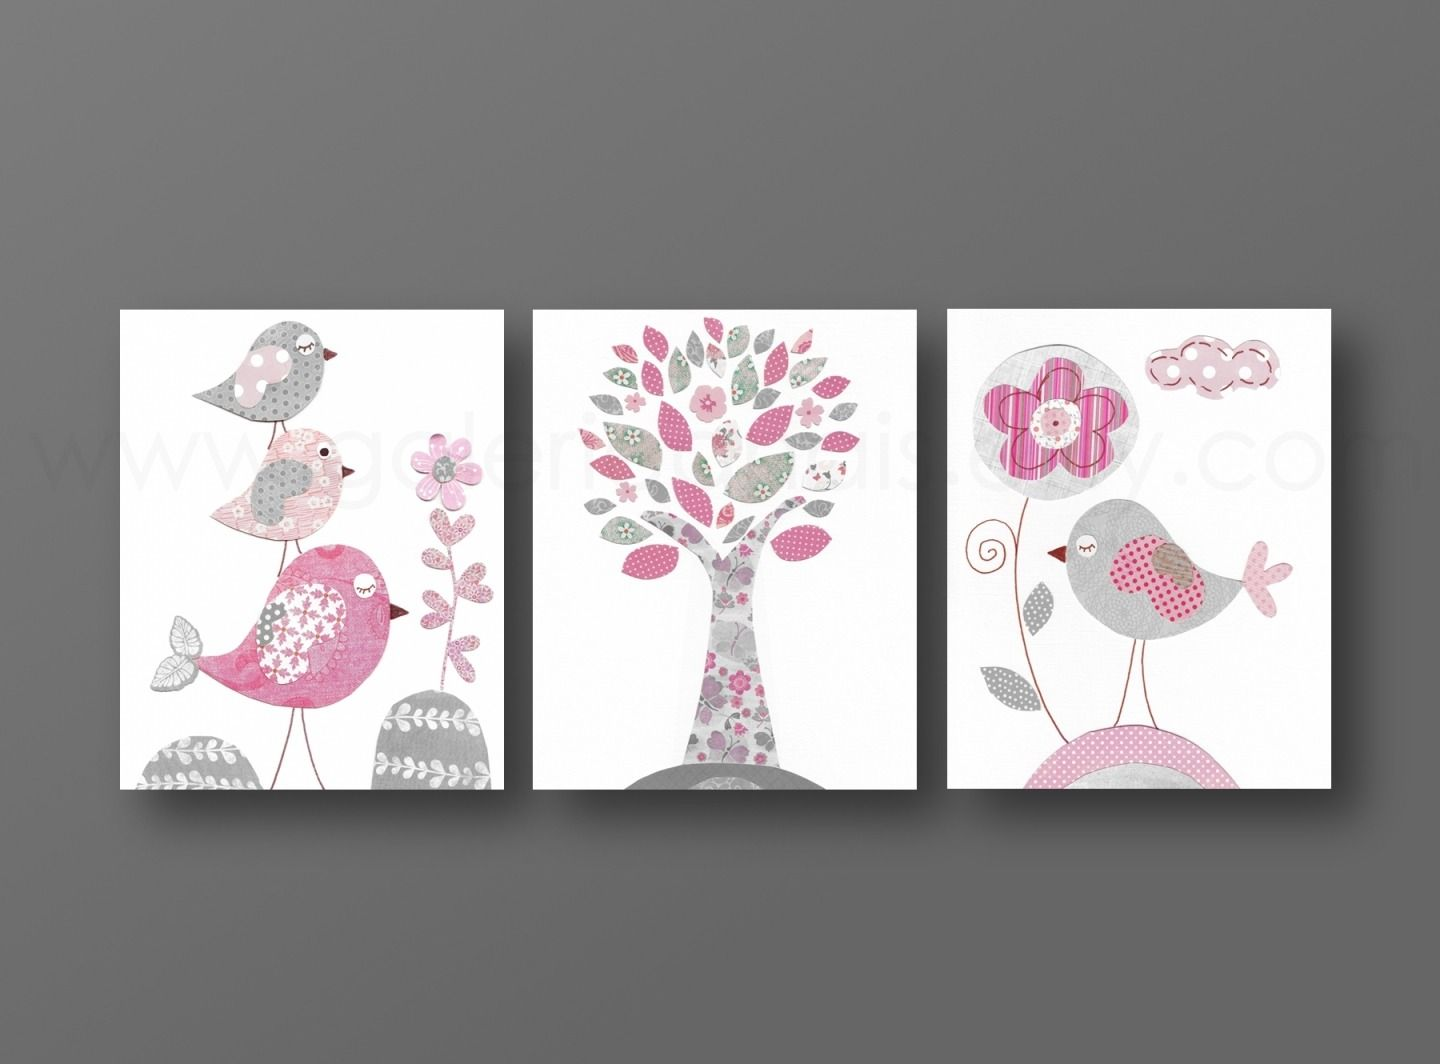 Lot de 3 illustrations pour chambre d 39 enfant et bebe rose et gris diy and other stuff - Cadre photo chambre bebe ...